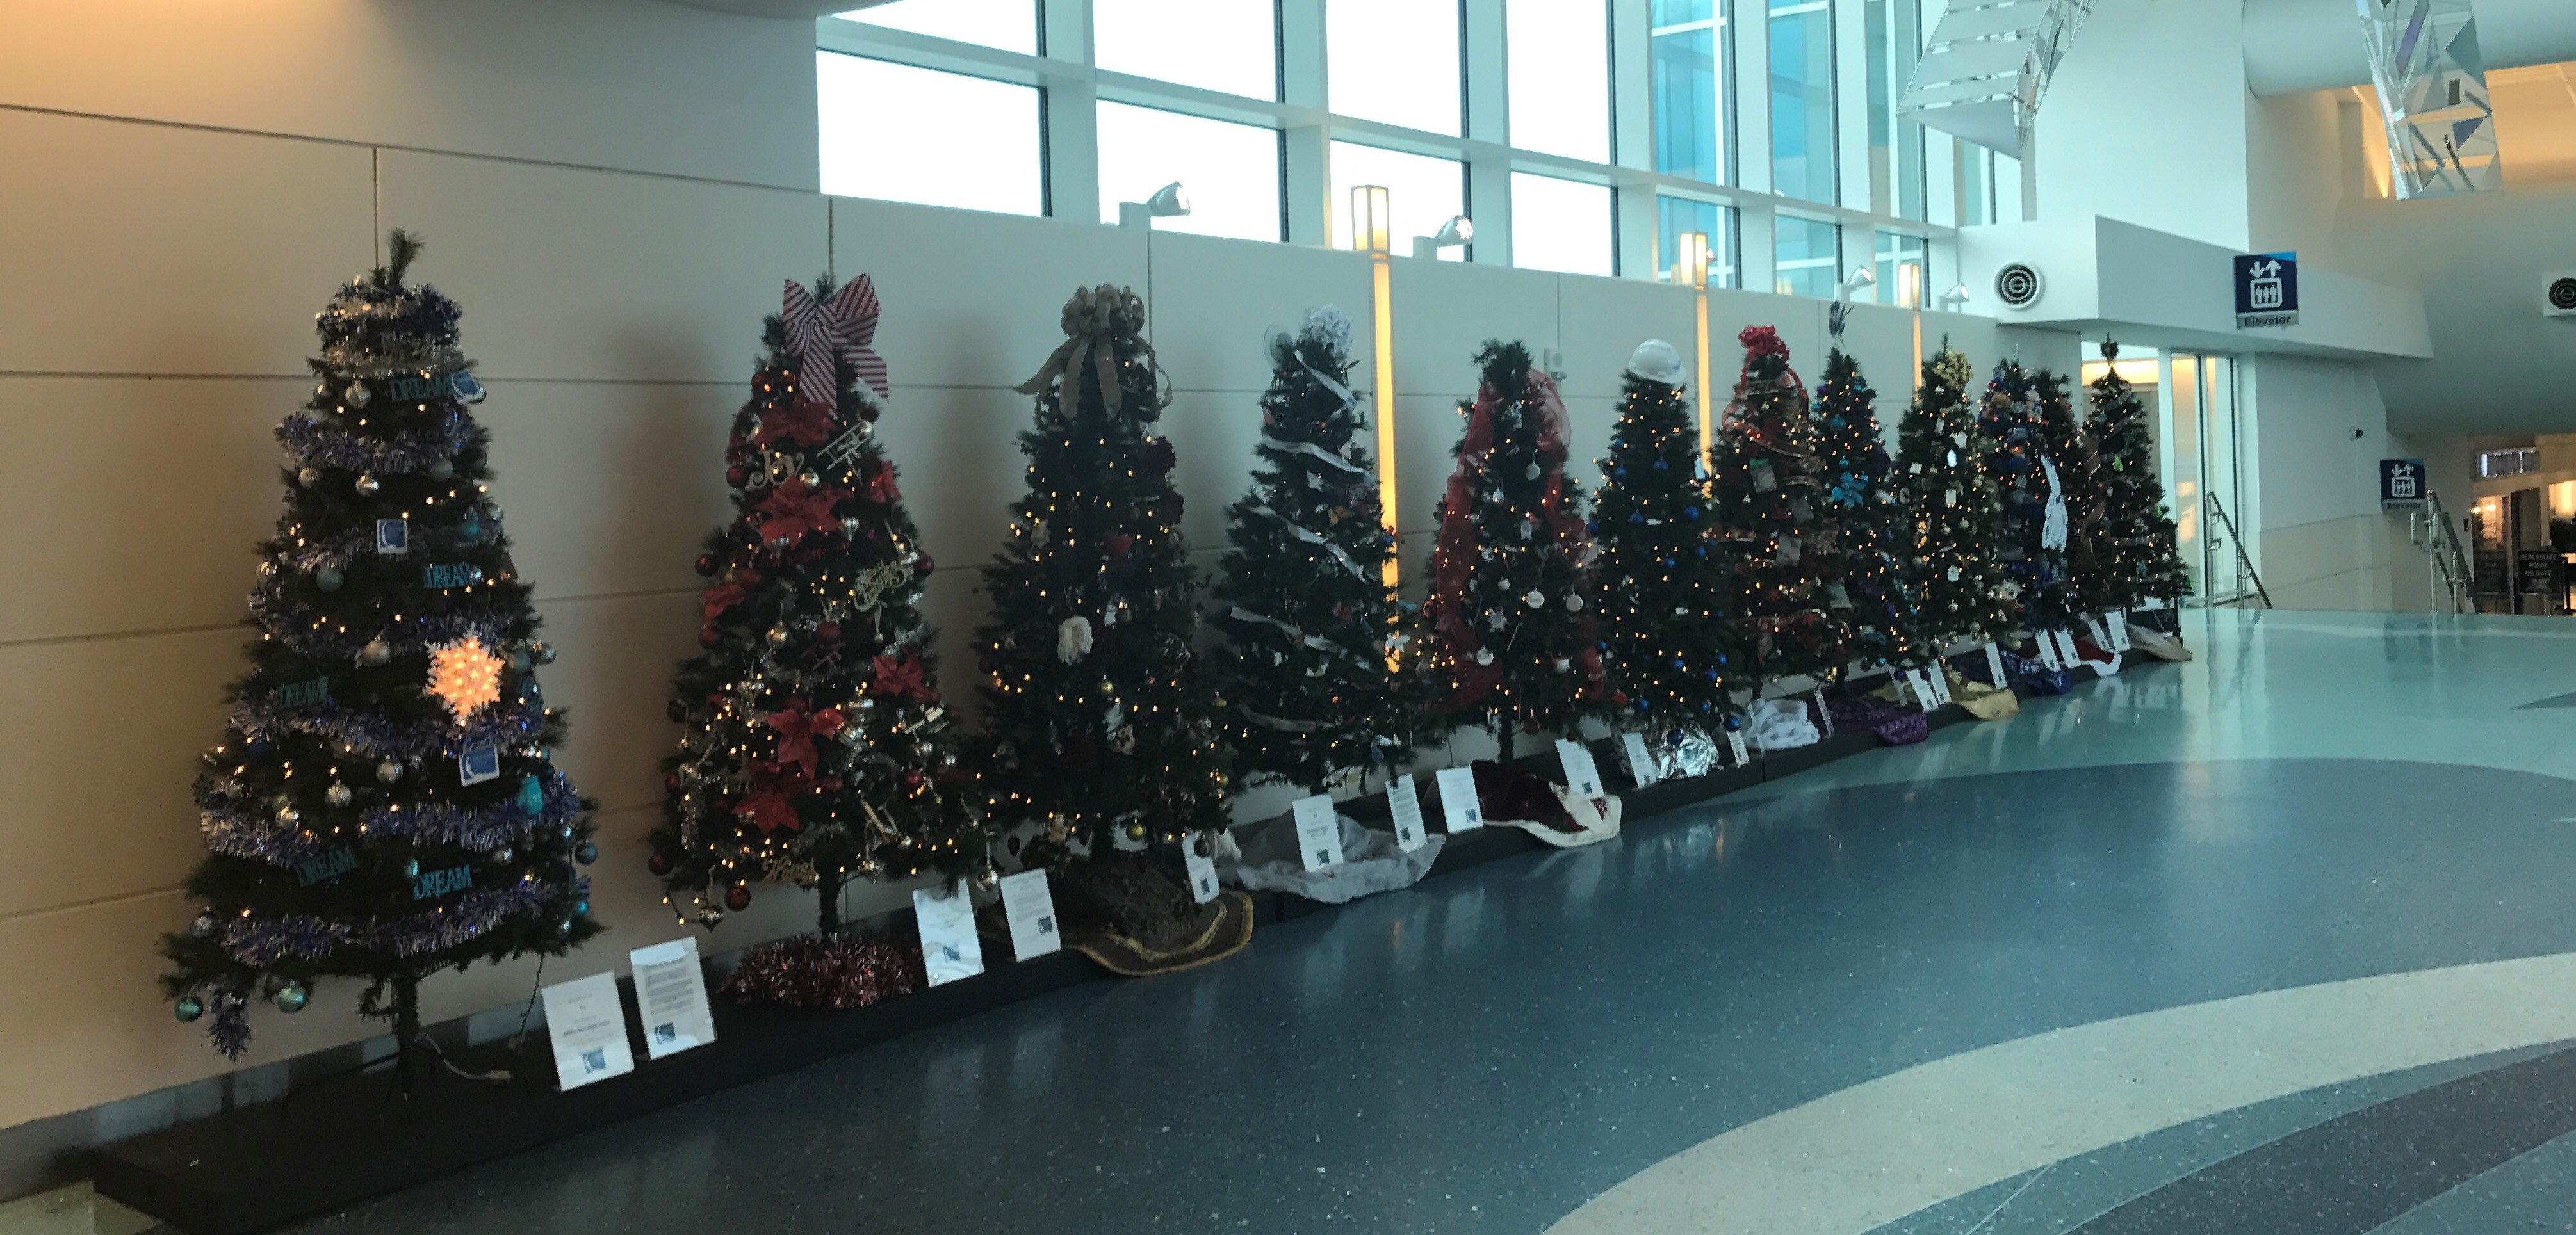 A christmas decoration that has been donated to you is a - As You Travel Through Jax This Season Or Picking Up Friends And Family Please Spend A Few Minutes To Admire The Trees Cast Your Vote And Make A Donation